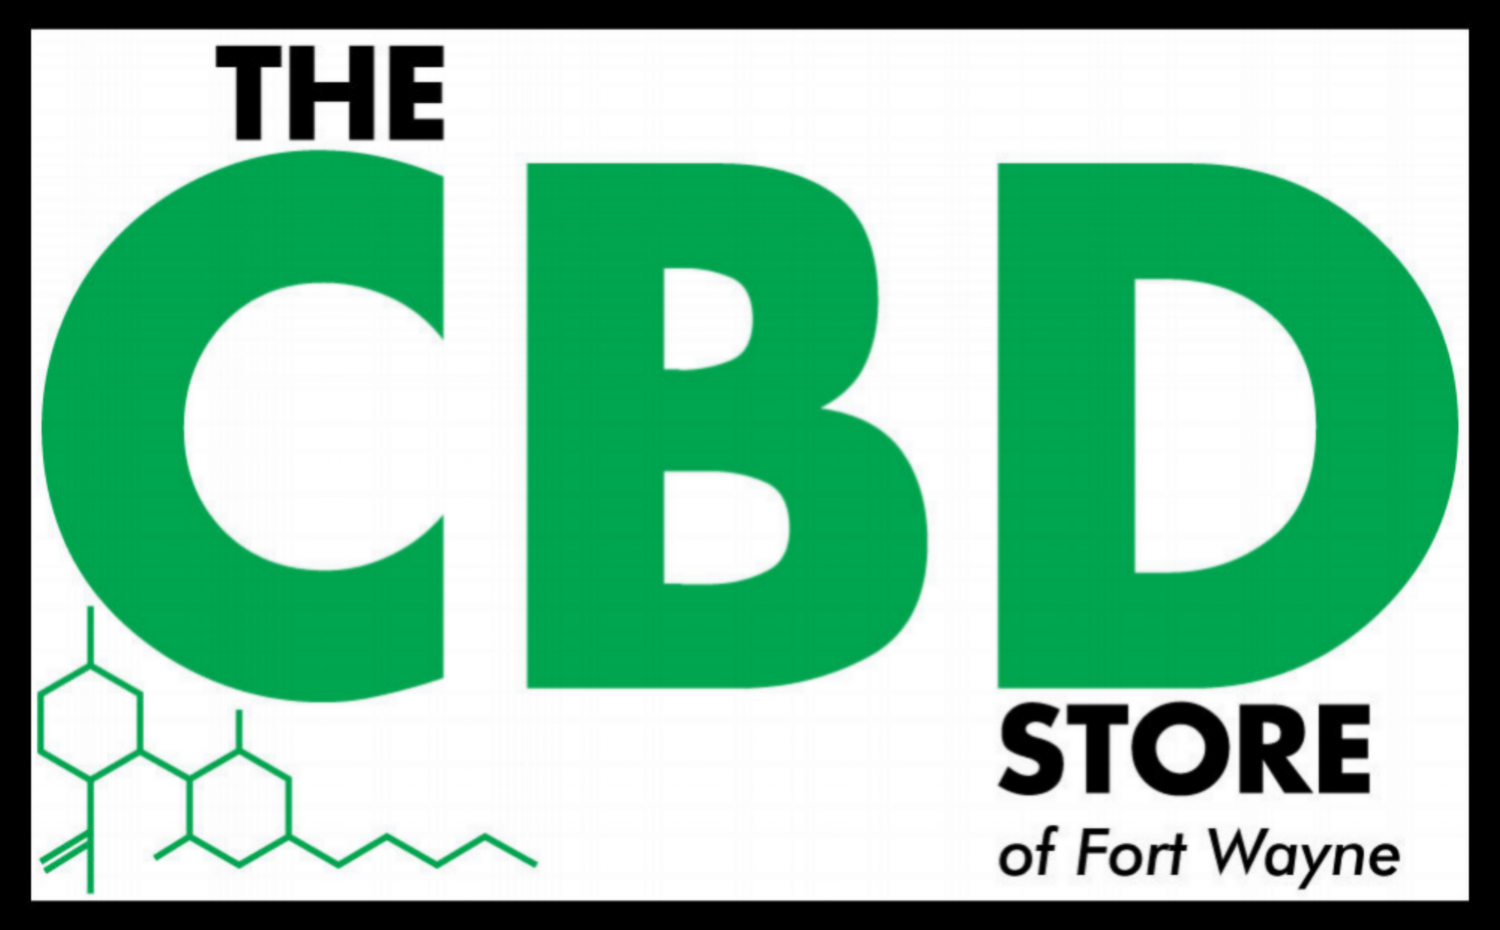 The CBD Store of Fort Wayne